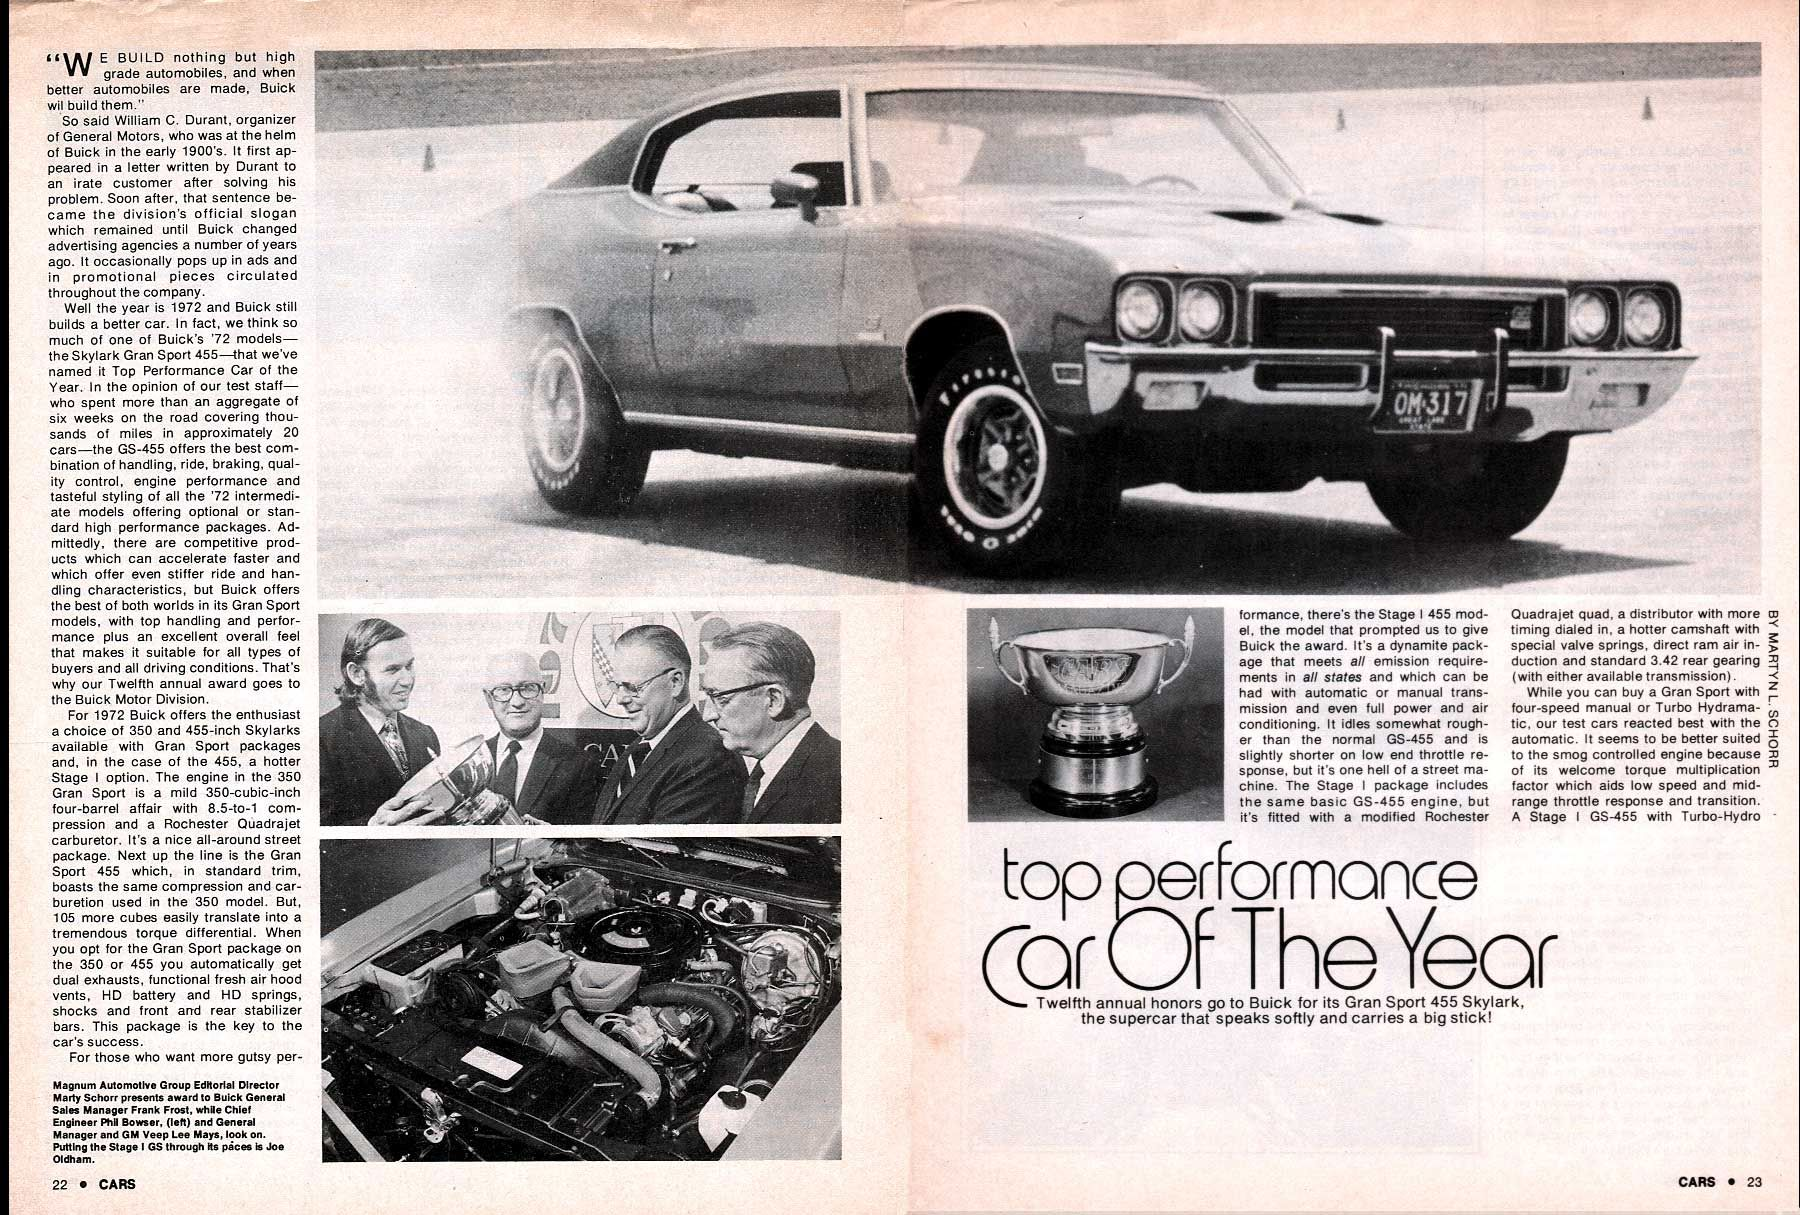 """1972 buick gs 455 stage 1 - """"car of the year"""" - article"""